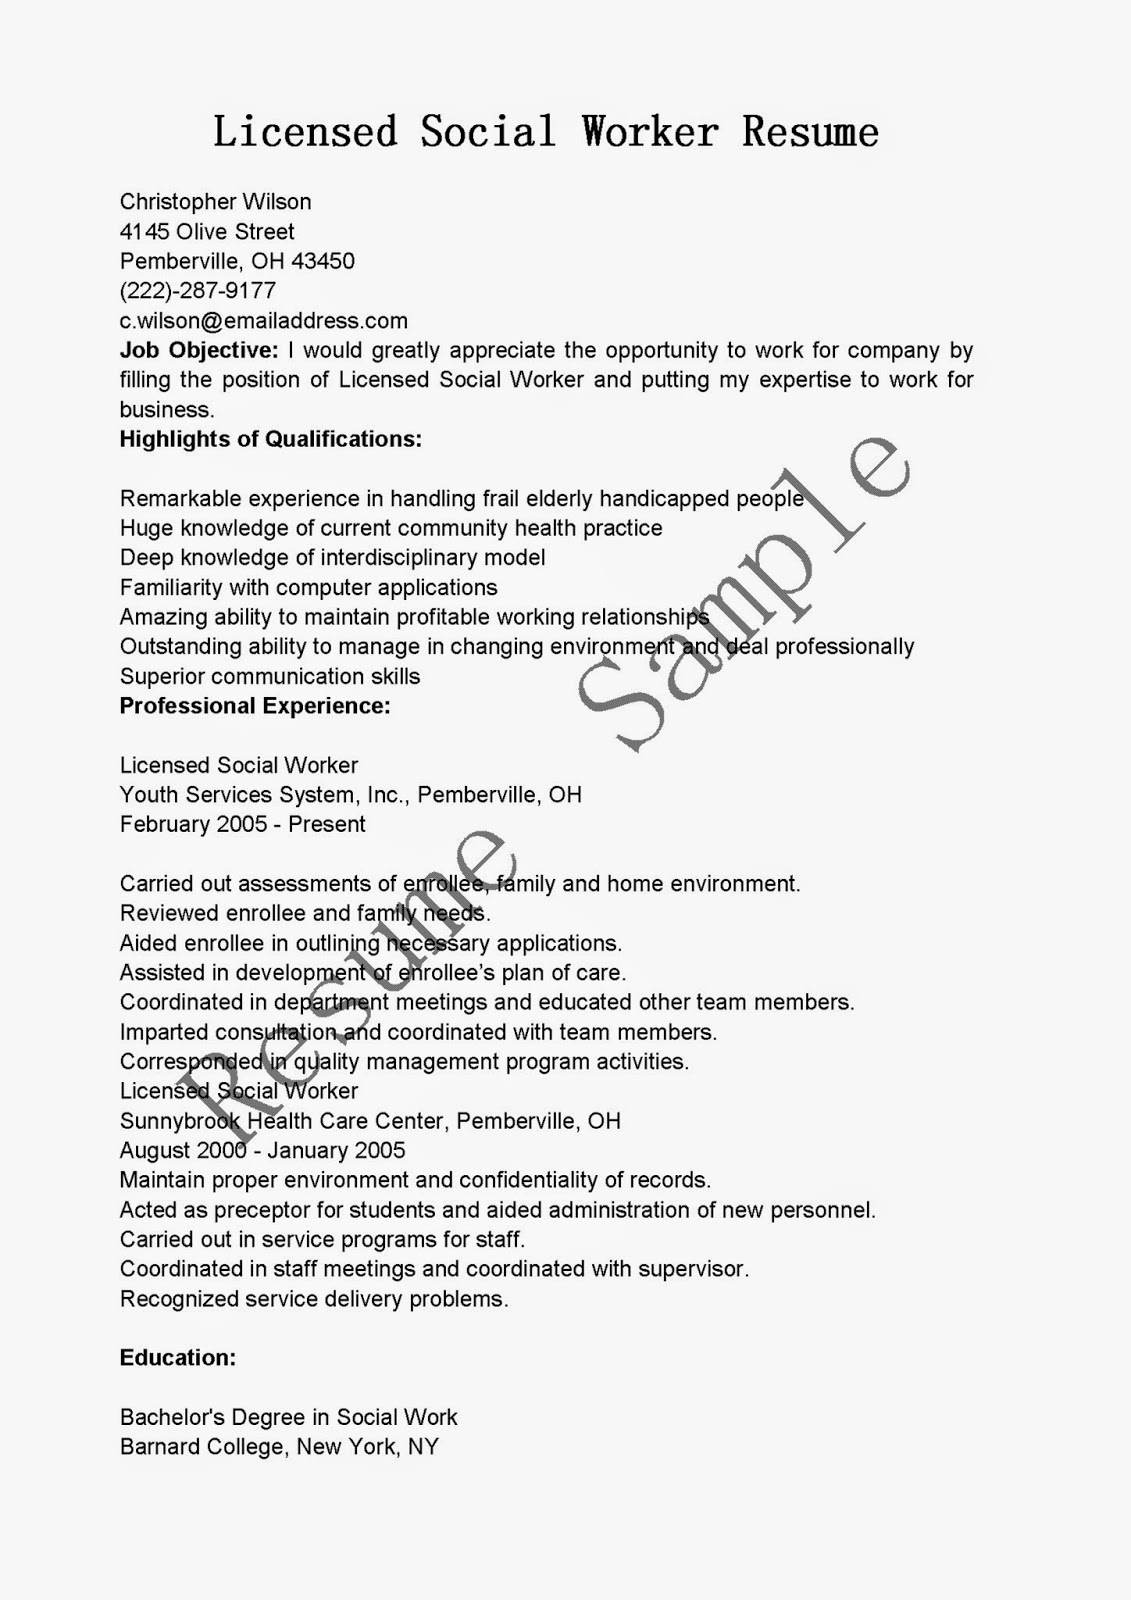 pharmacist resume sample myoptimalcareer pharmacist resume sample myoptimalcareer social work